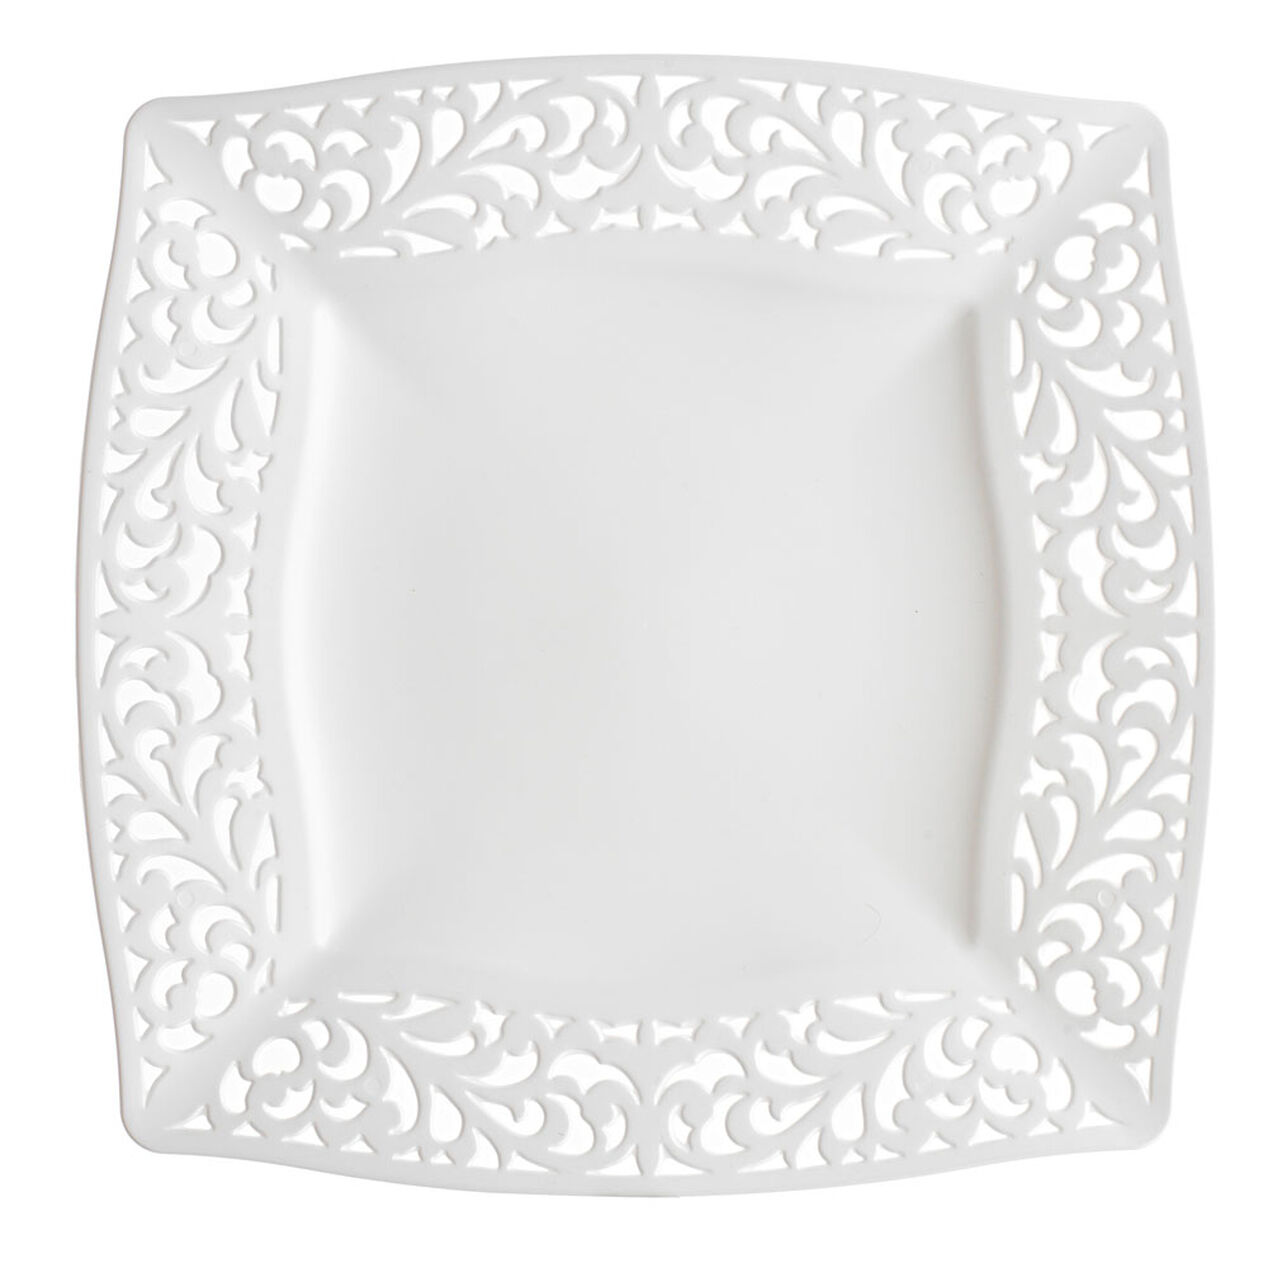 White Pierced Square Dinner Plates Set Of 10 At Home